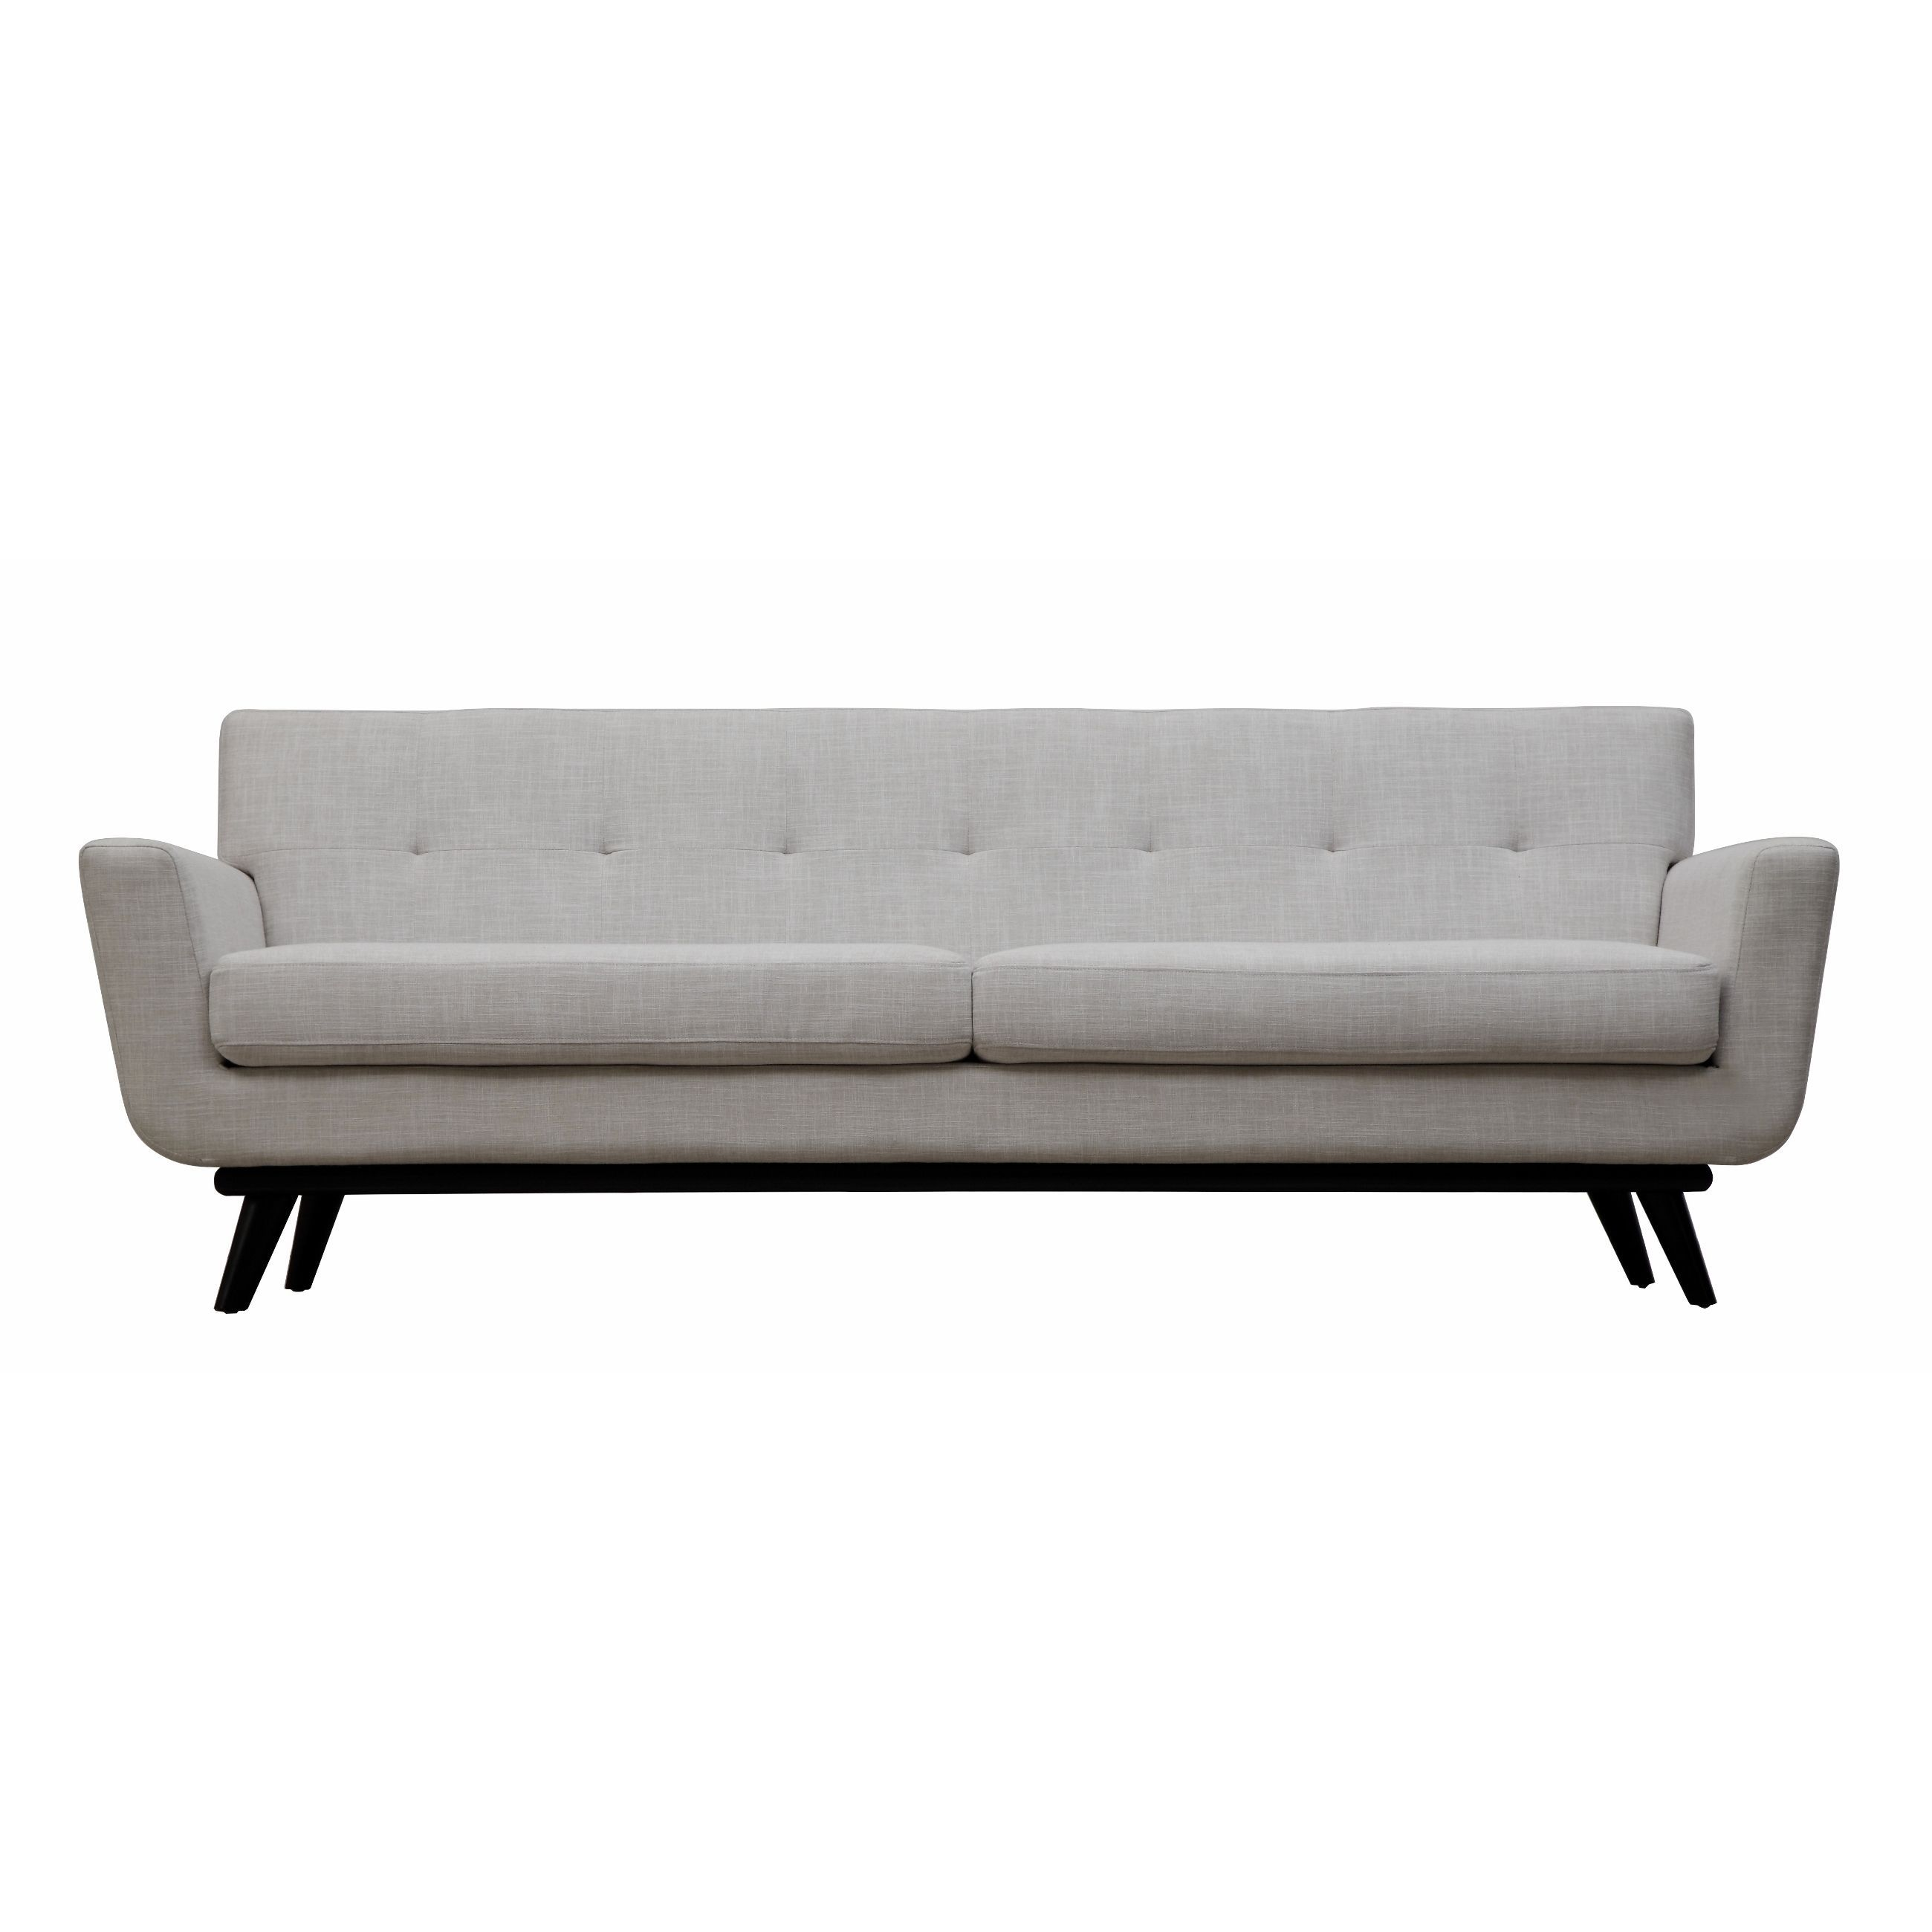 Strong and handsome with a soft side The Calvin sofa captures the